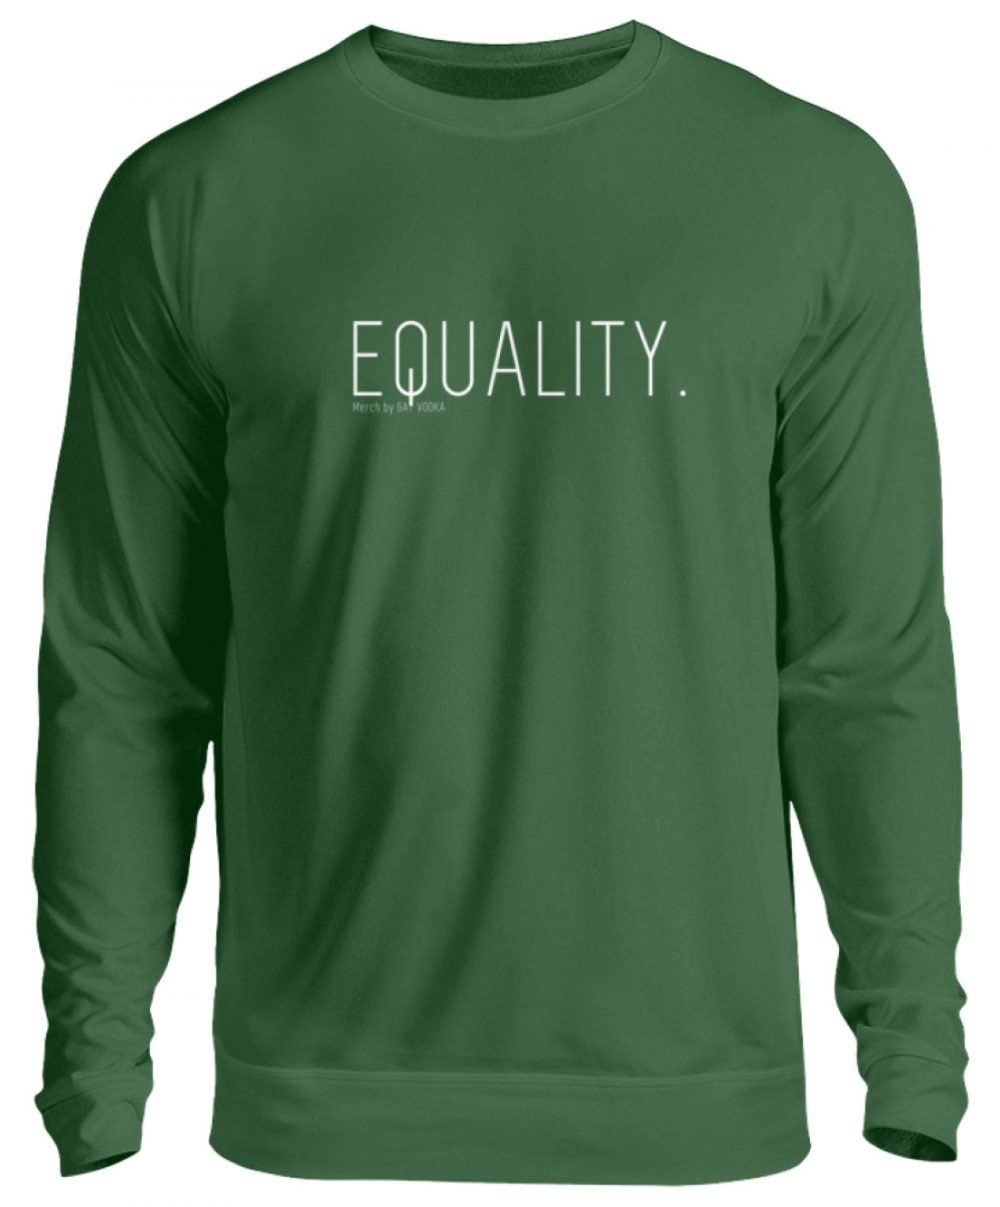 EQUALITY. - Unisex Pullover-833